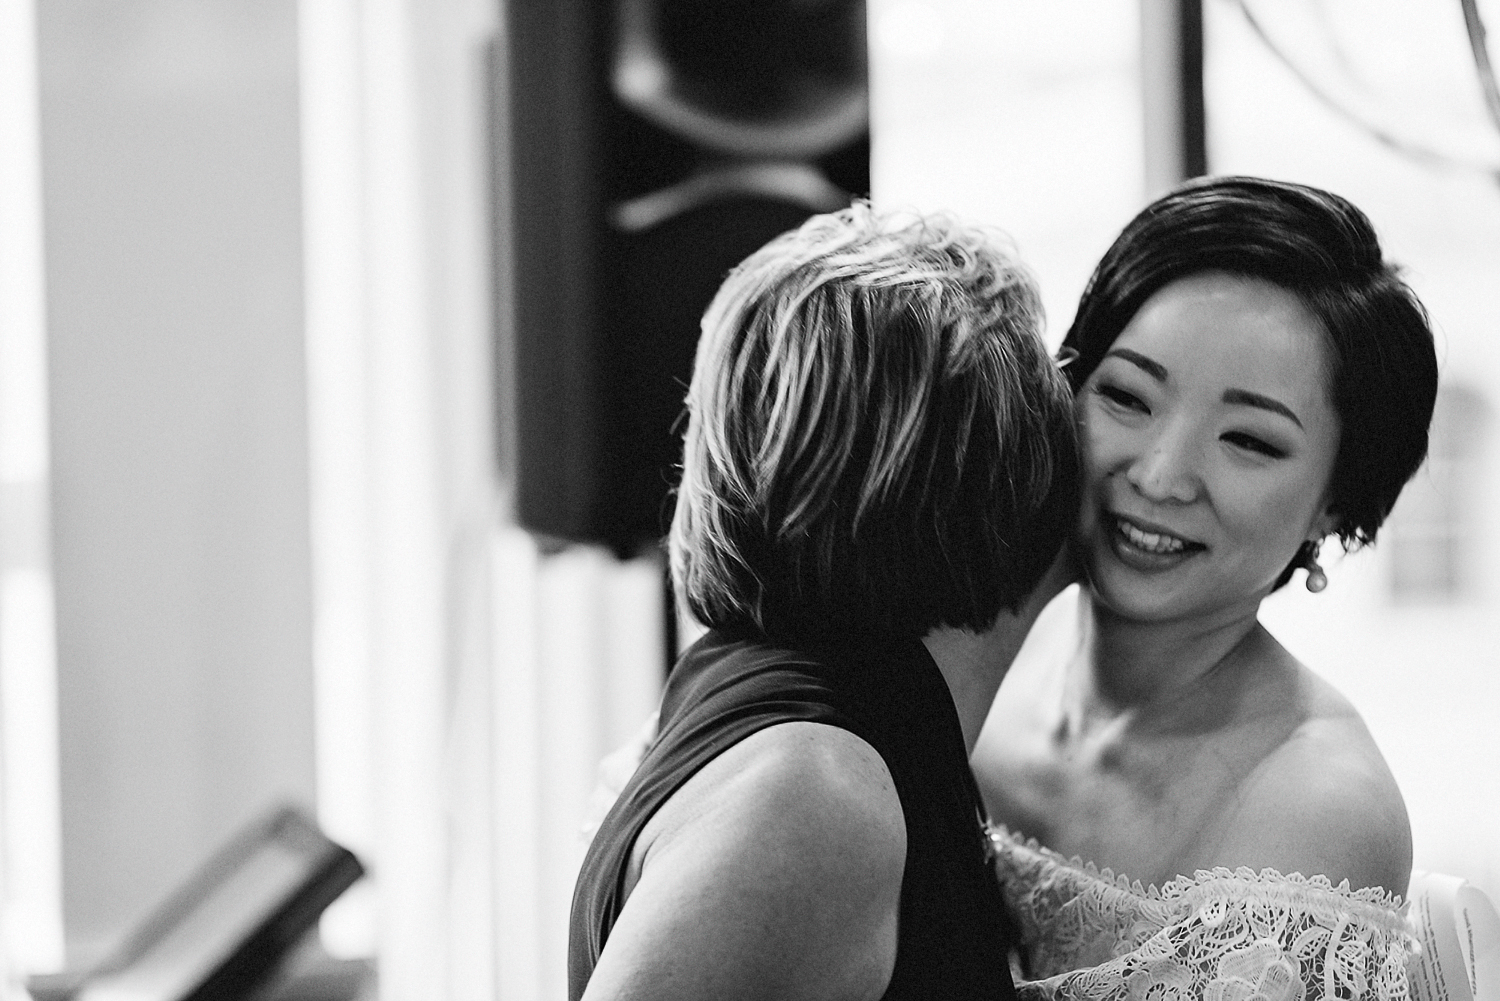 Best-Wedding-Photographers-Toronto_-Urban-City-Wedding-Photography-Downtown-Toronto-Photographer_Vintage-Bride-and-Groom-Details_The-Chase-Wedding-Venue_Candid-Photojournalistic-Documentary-Bride-and-Mother-Law.jpg